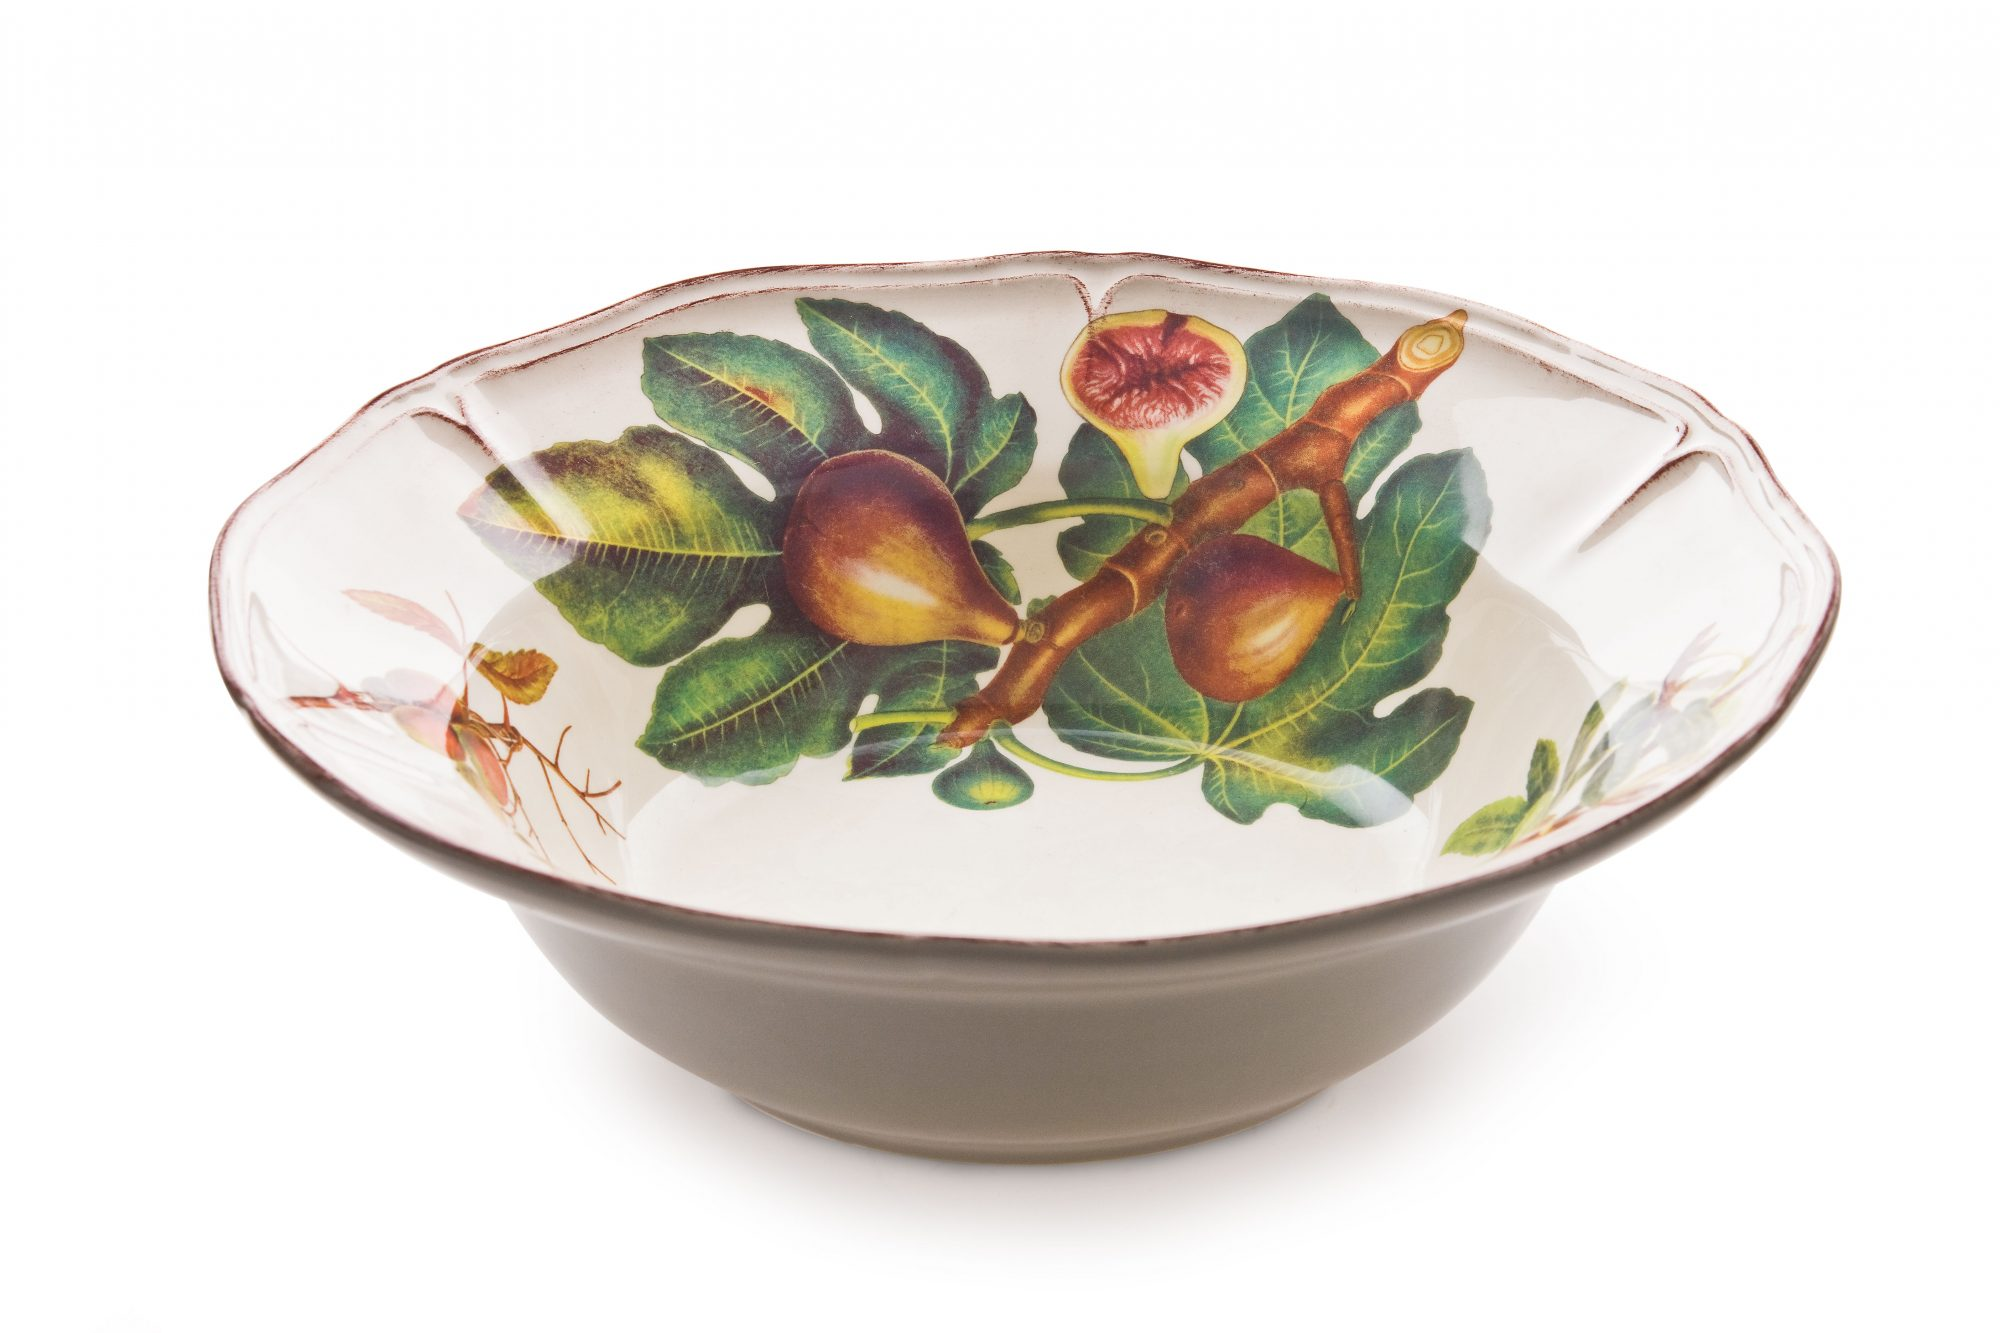 Great Gifts on a Budget: Serving Bowl